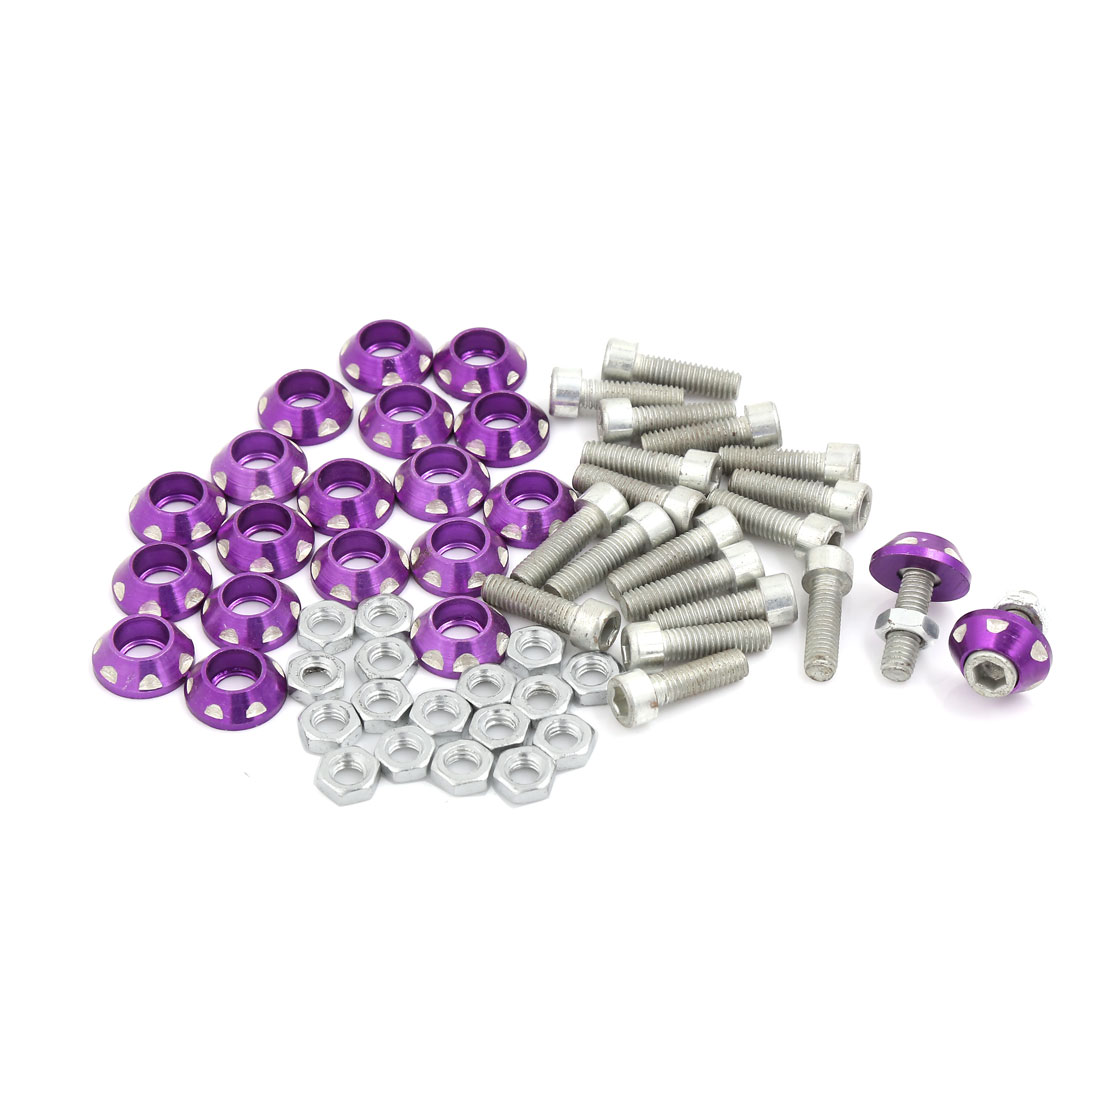 20 Pcs 25mm Long Cone Head Cap License Plate Bolts Screw Purple for Car Vehicle